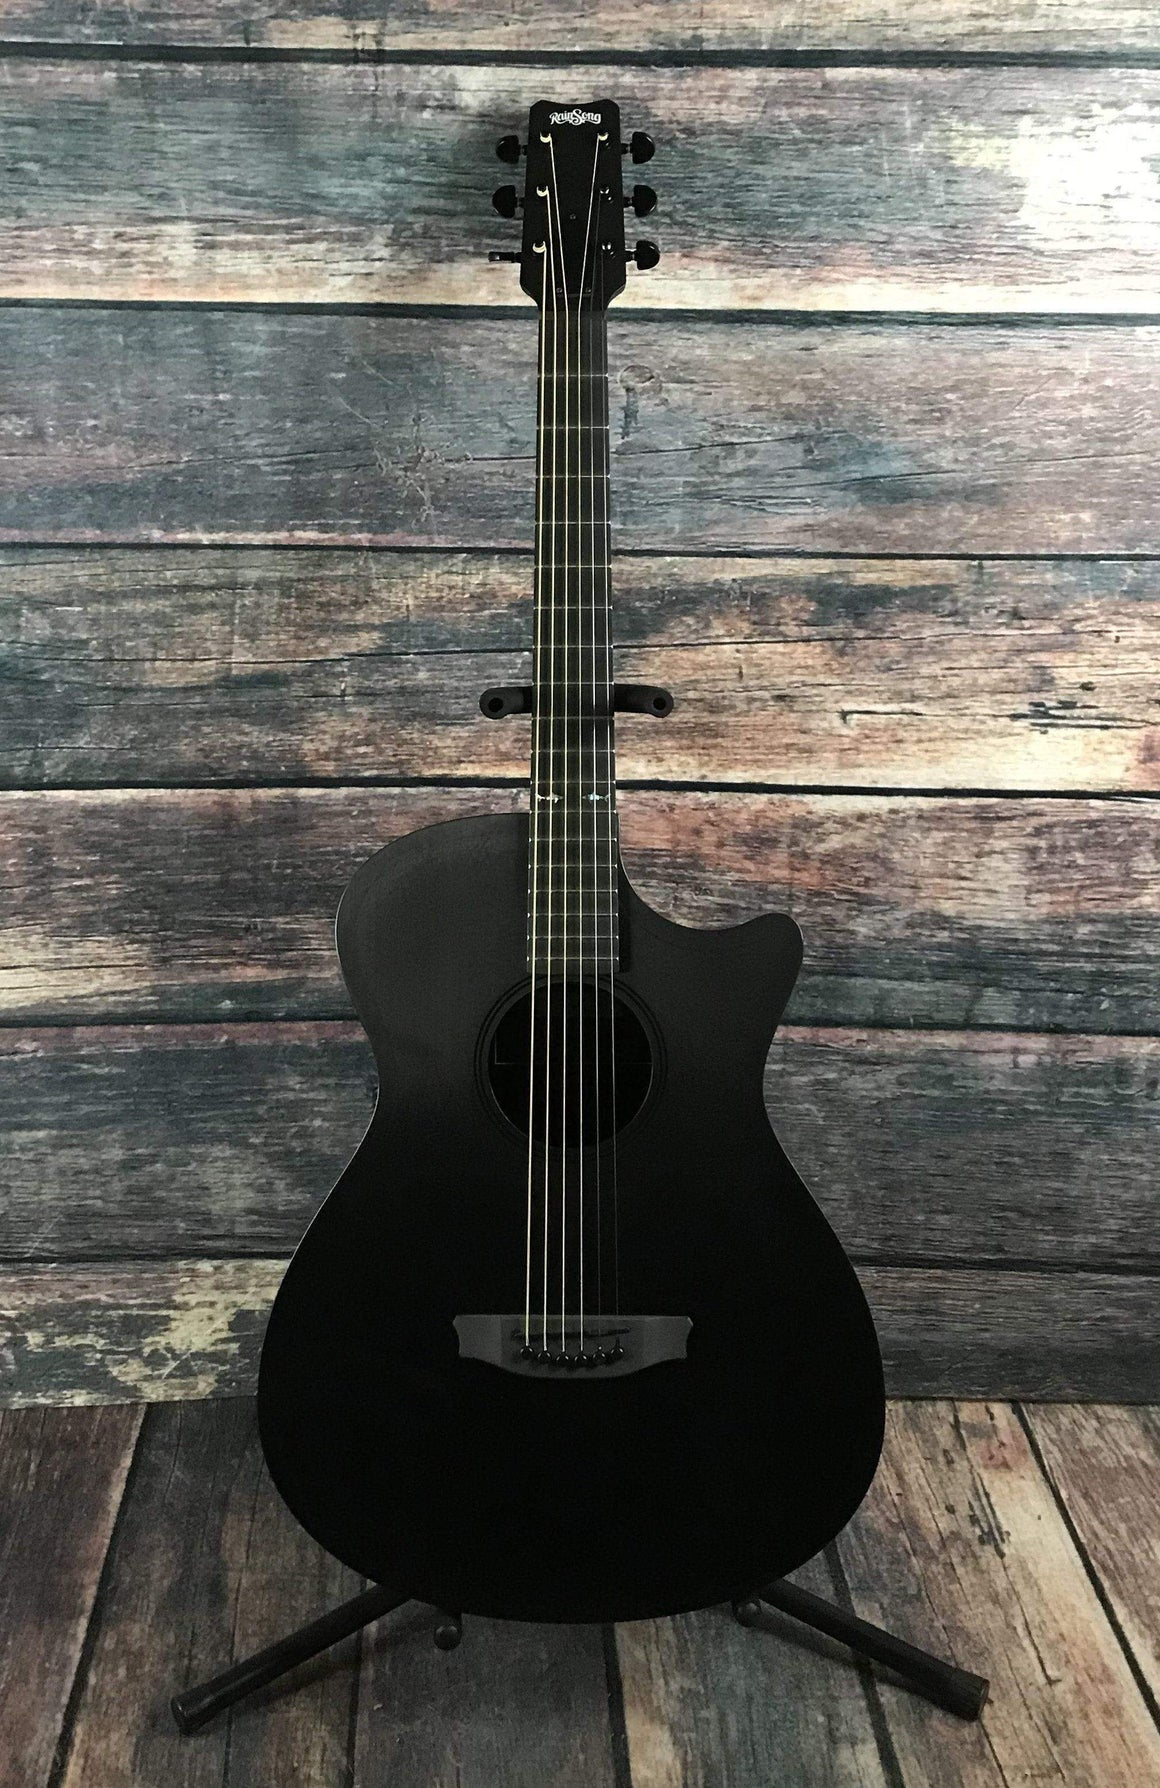 RainSong Acoustic Guitar Used Rainsong CH-OM1000NS Concert Hybrid Acoustic Electric Guitar with Rainsong Case